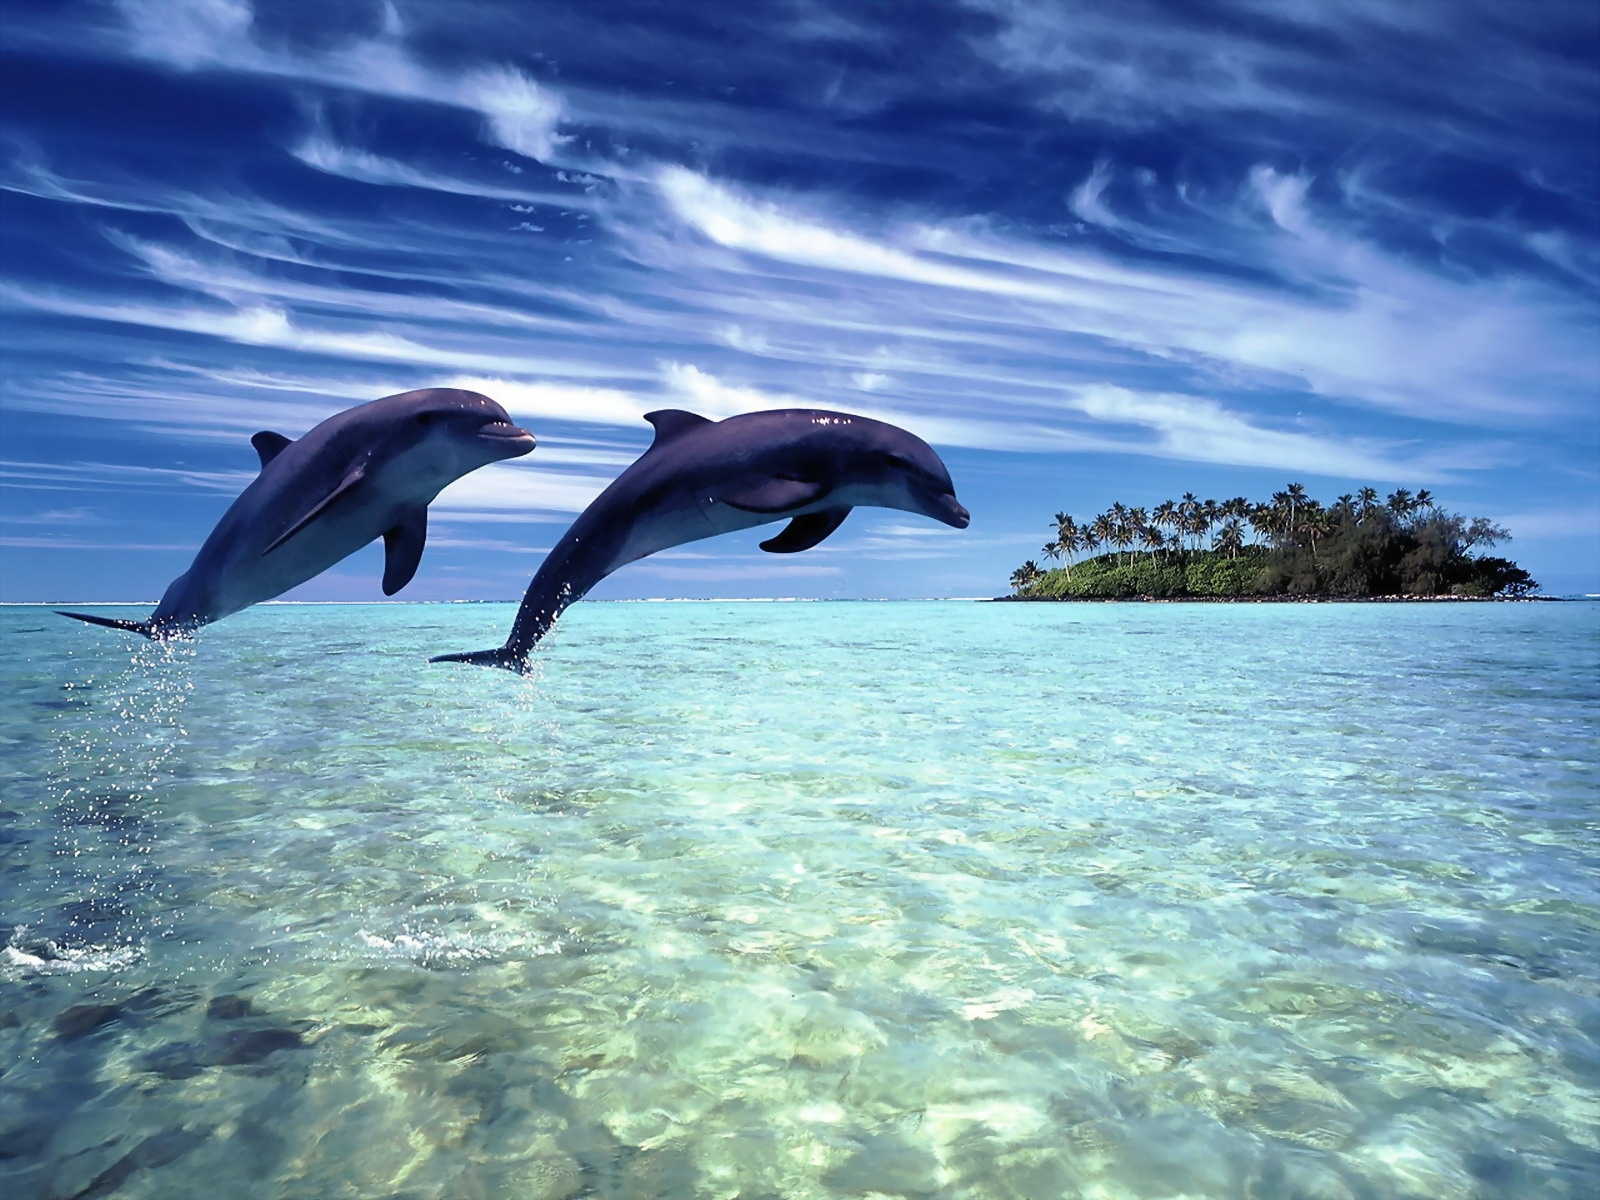 http://4.bp.blogspot.com/-1VDG7Rg1LiE/UO-wGem9W1I/AAAAAAAAGL8/BUENjgIVxdg/s1600/The-best-top-desktop-dolphin-wallpapers-hd-dolphins-wallpaper-27.jpg